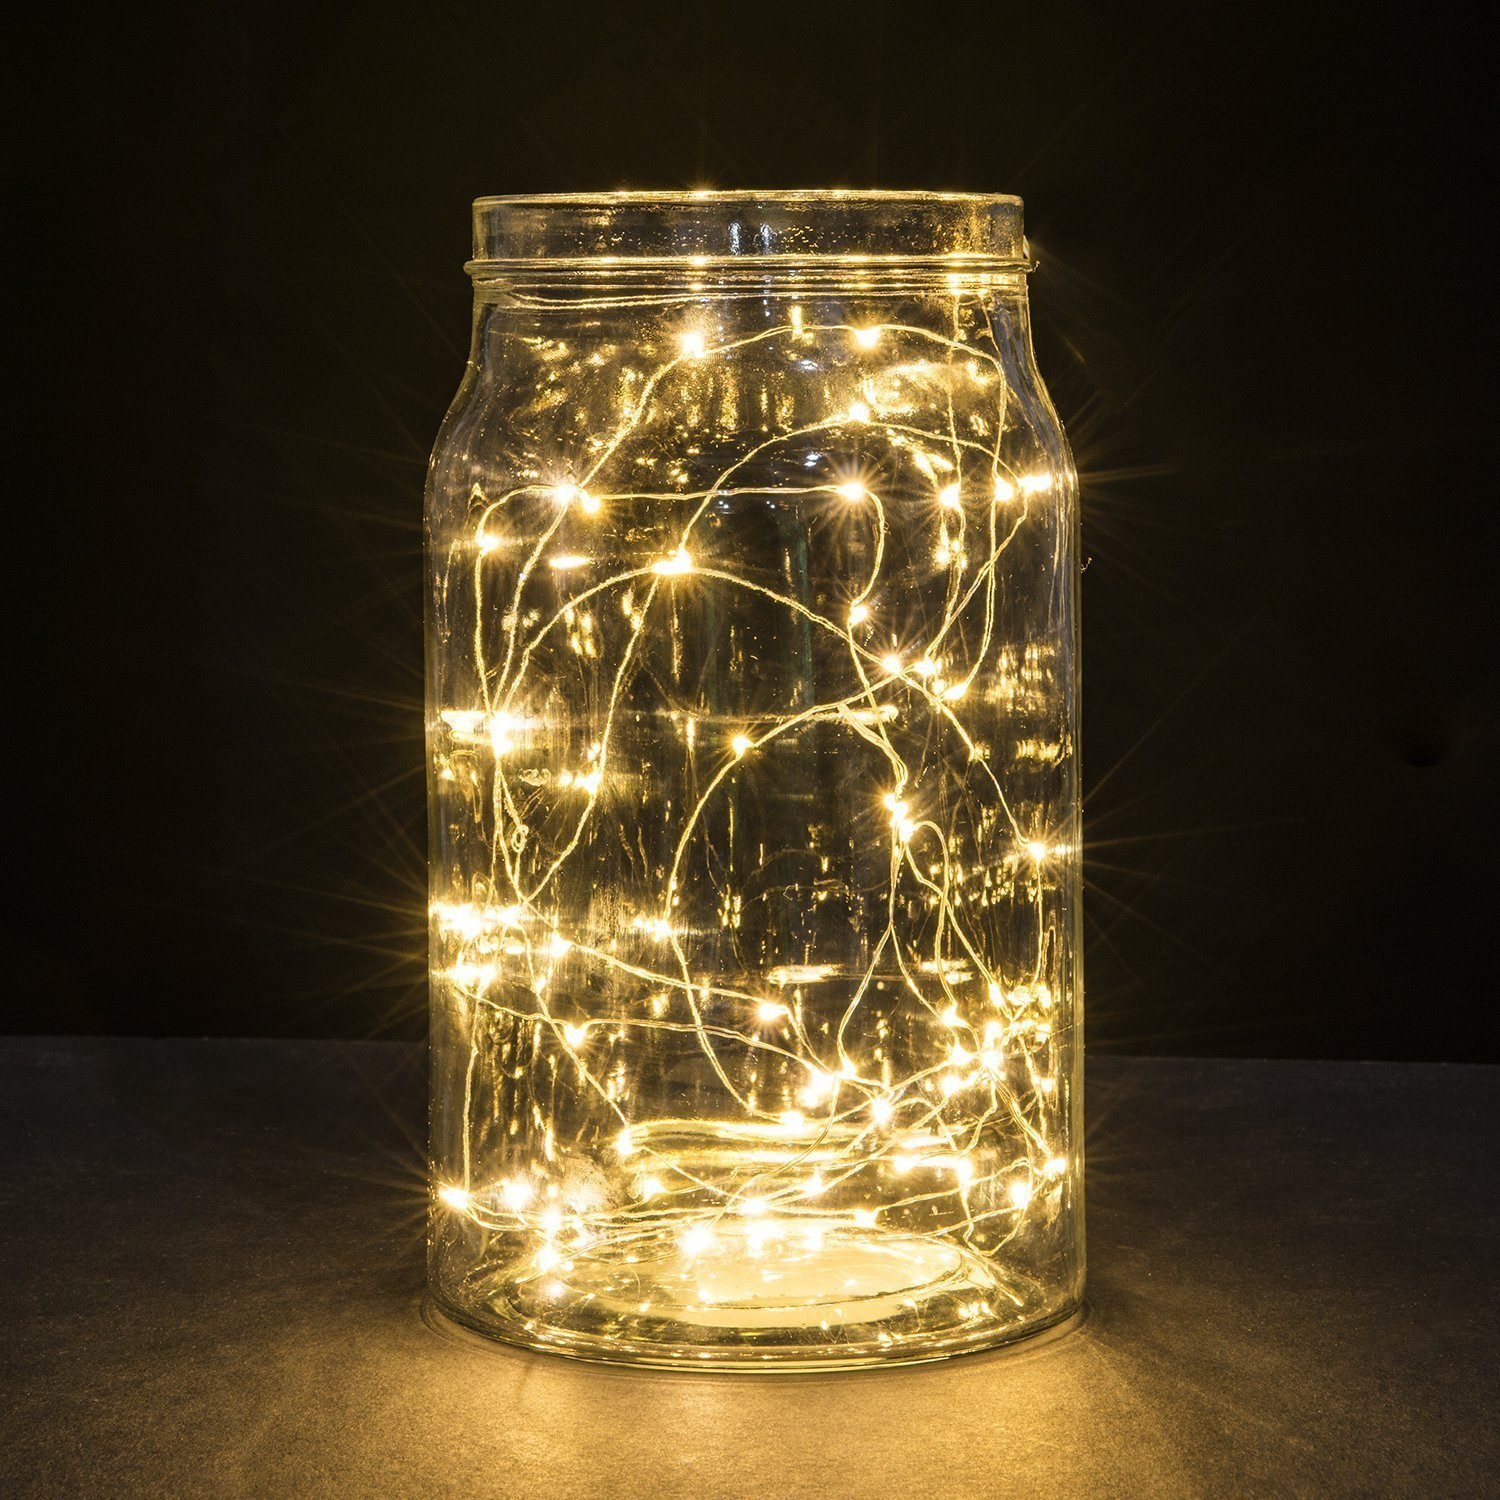 Oak Leaf Home Decor Indoor Home Decorative Party String Lights 2 Set of Micro 30 LEDs